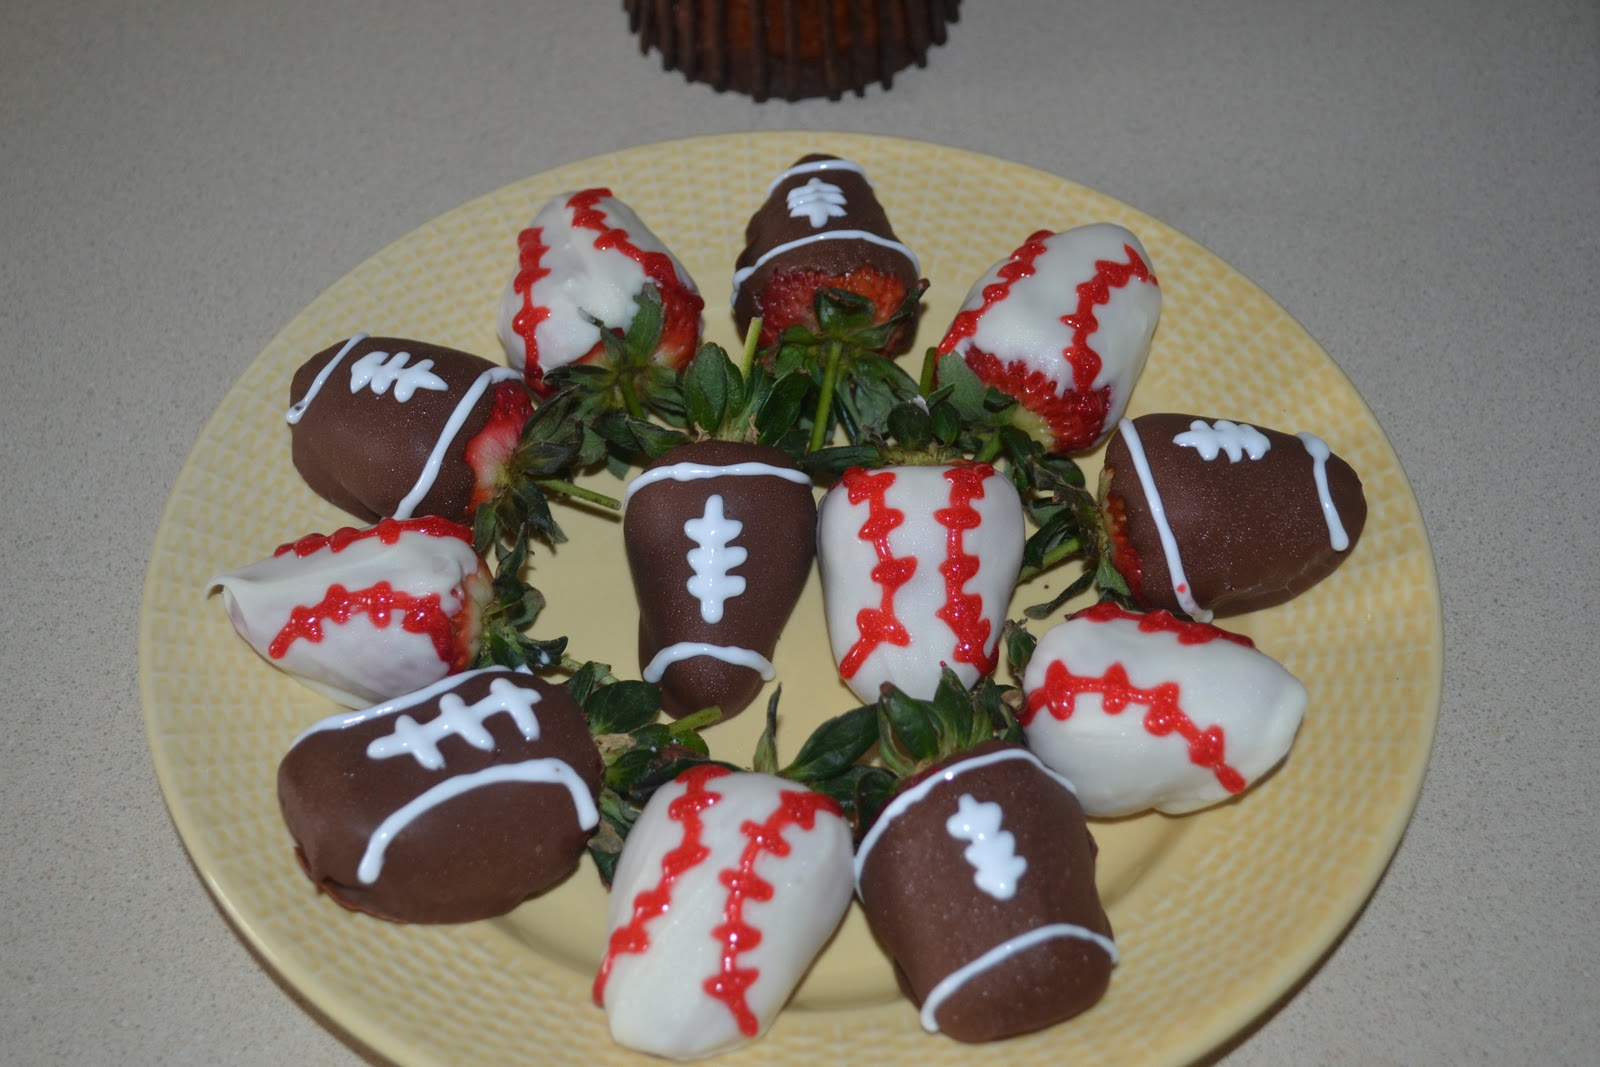 ... Yinz Mangia: The Red Ripe Strawberries and the BIG HUNGRY BOYFRIEND